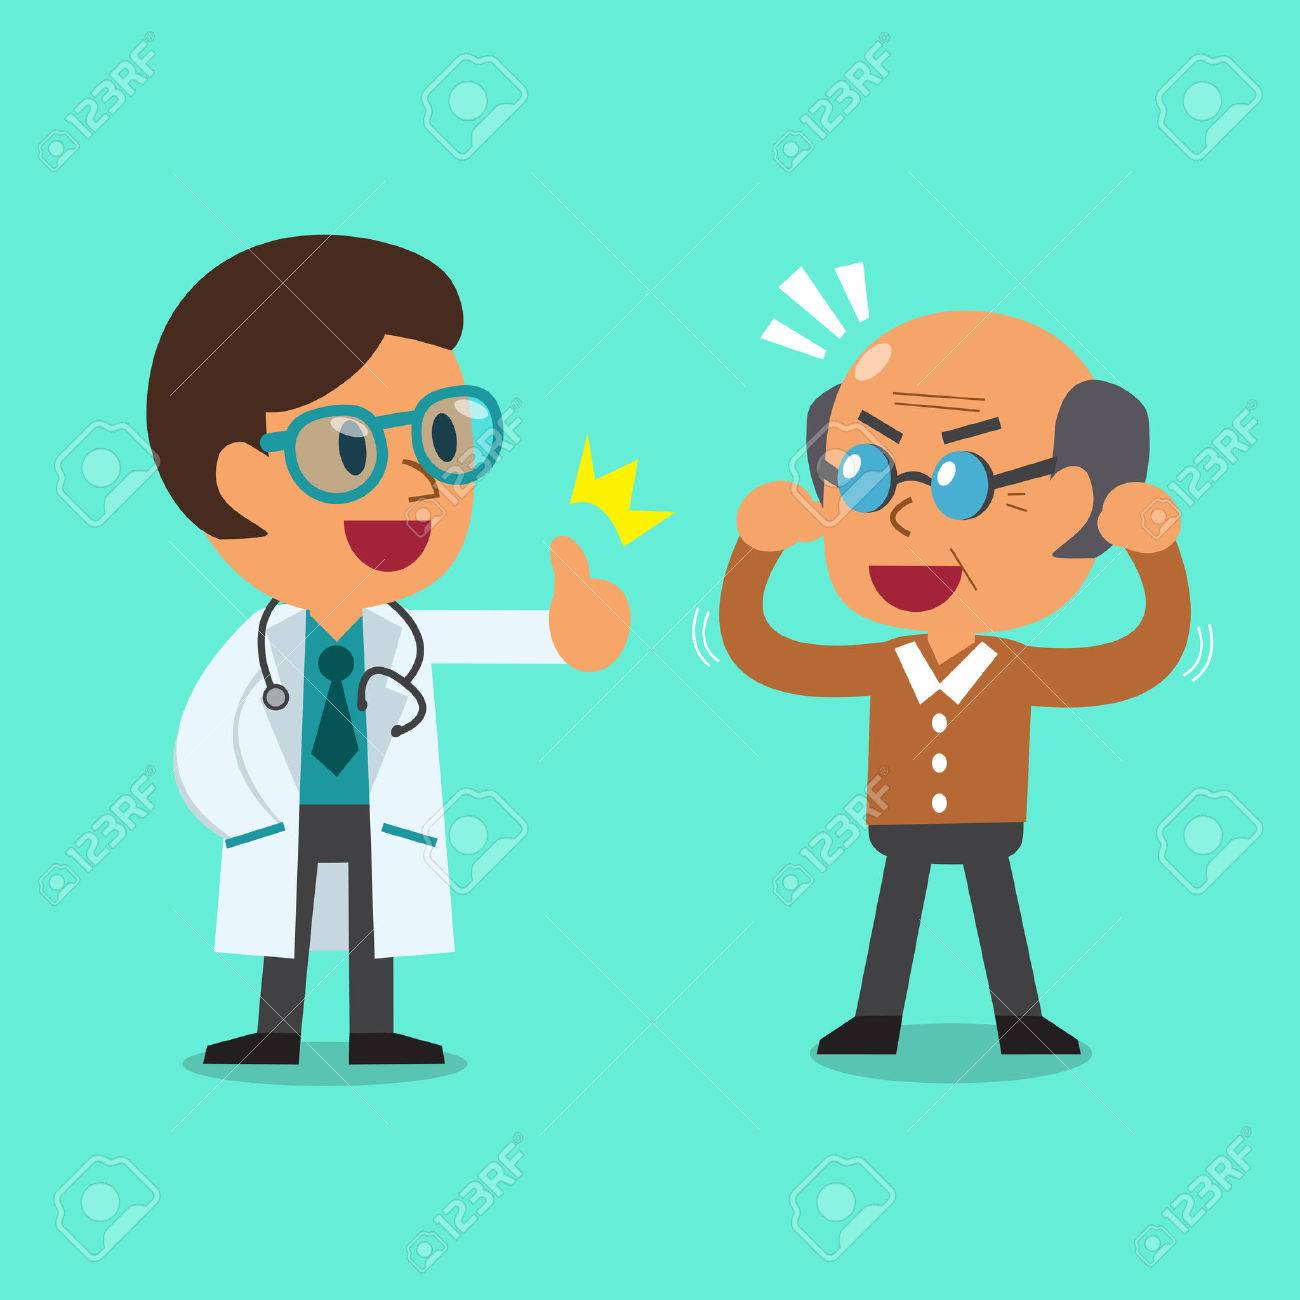 Cartoon doctor and old man - 49830218